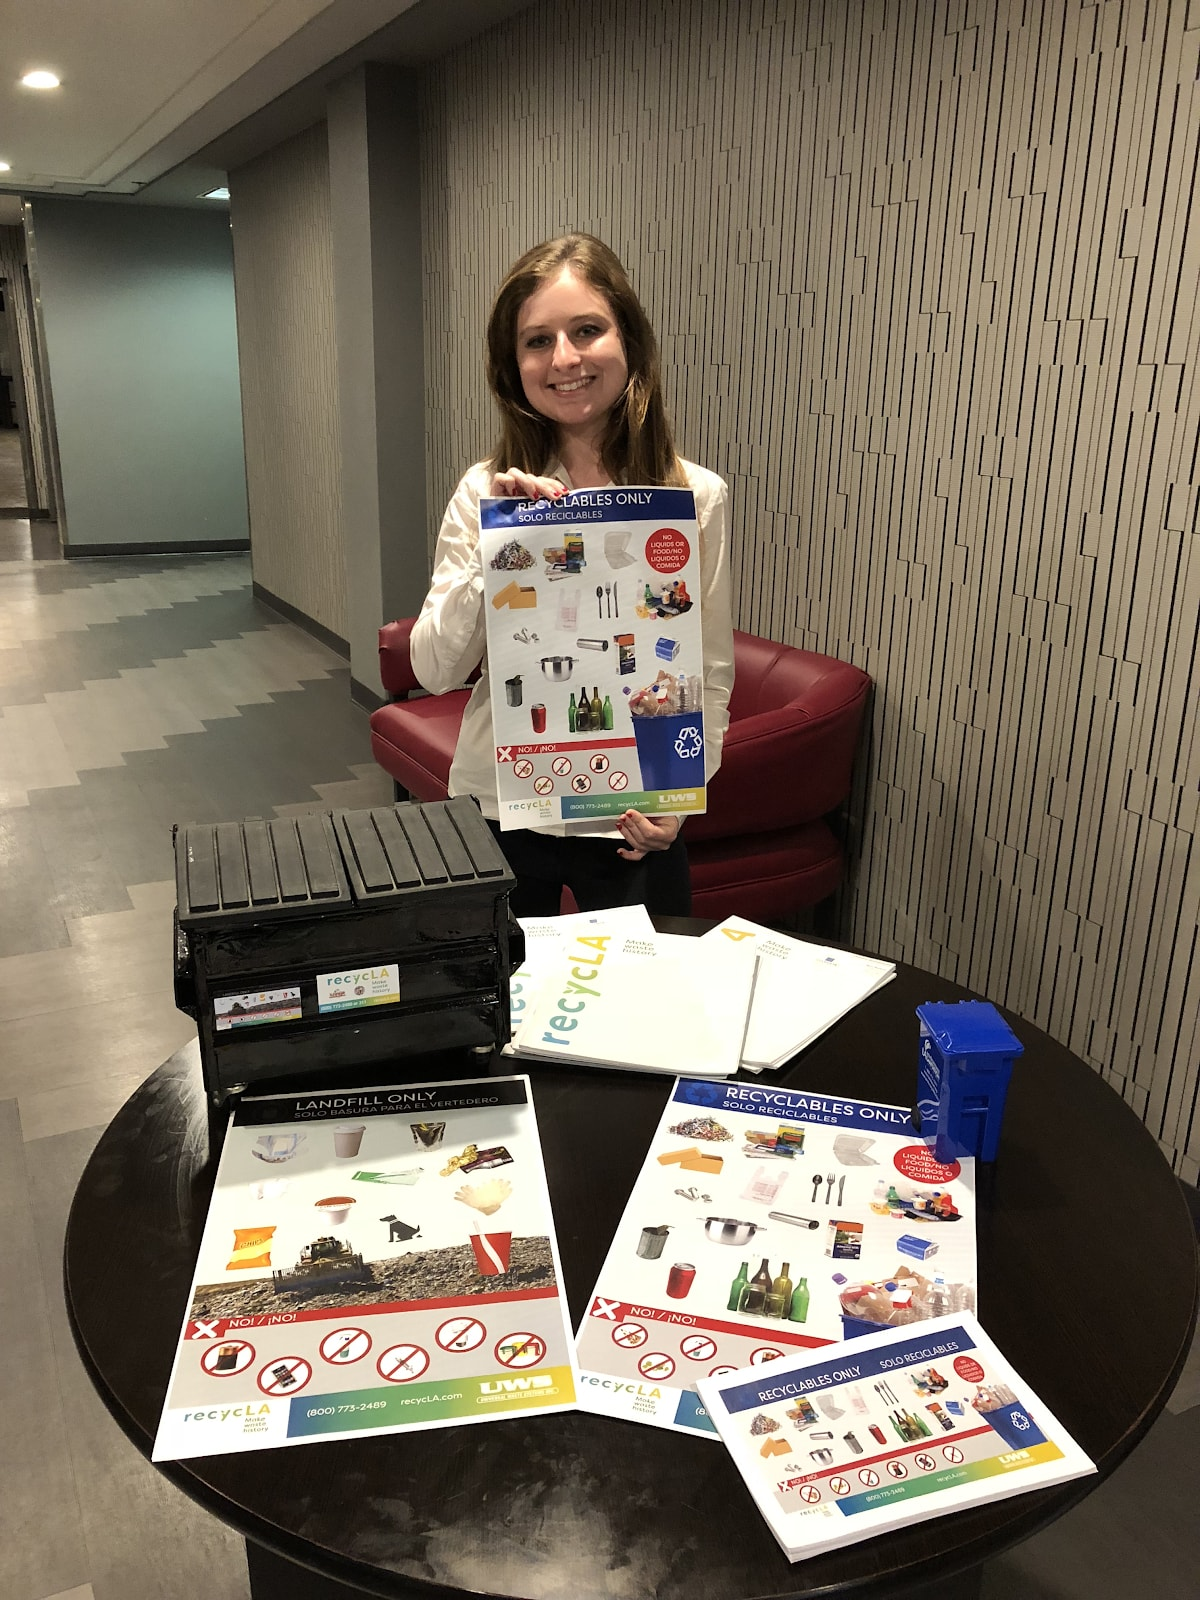 ZWT has distributed 10,000+ recycling resources to its customers through door-to-door interactions, community presentations, and local events.